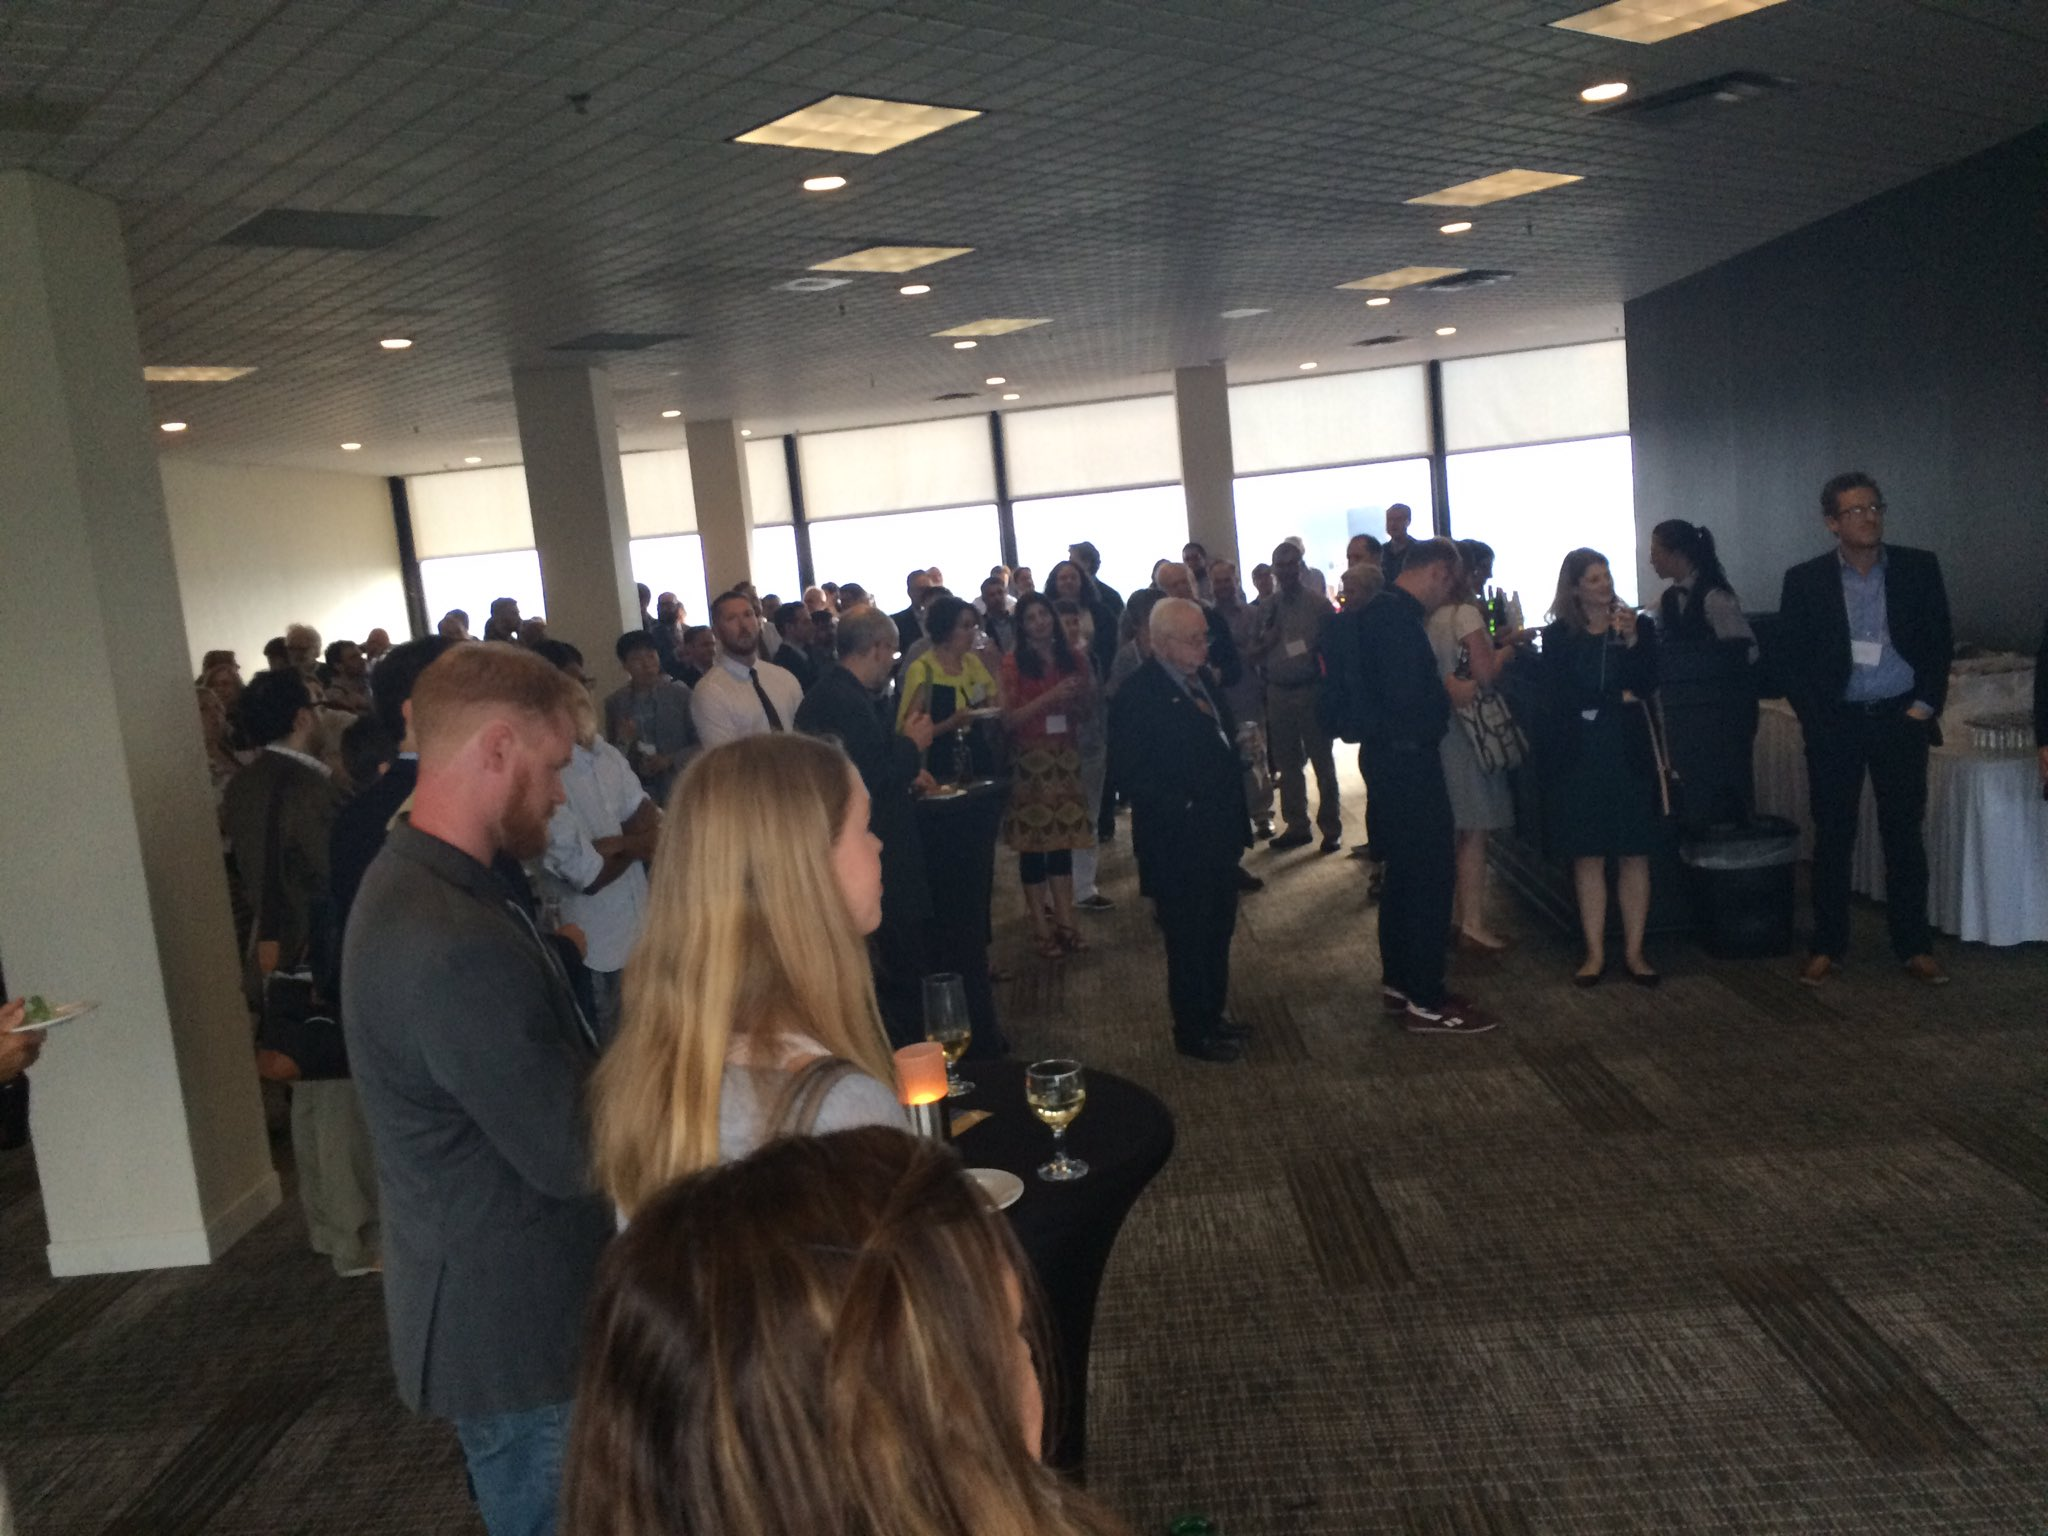 SEL reception: always a conference highlight. Penthouse floor! #nassr2017 https://t.co/nDb3m8zmHy